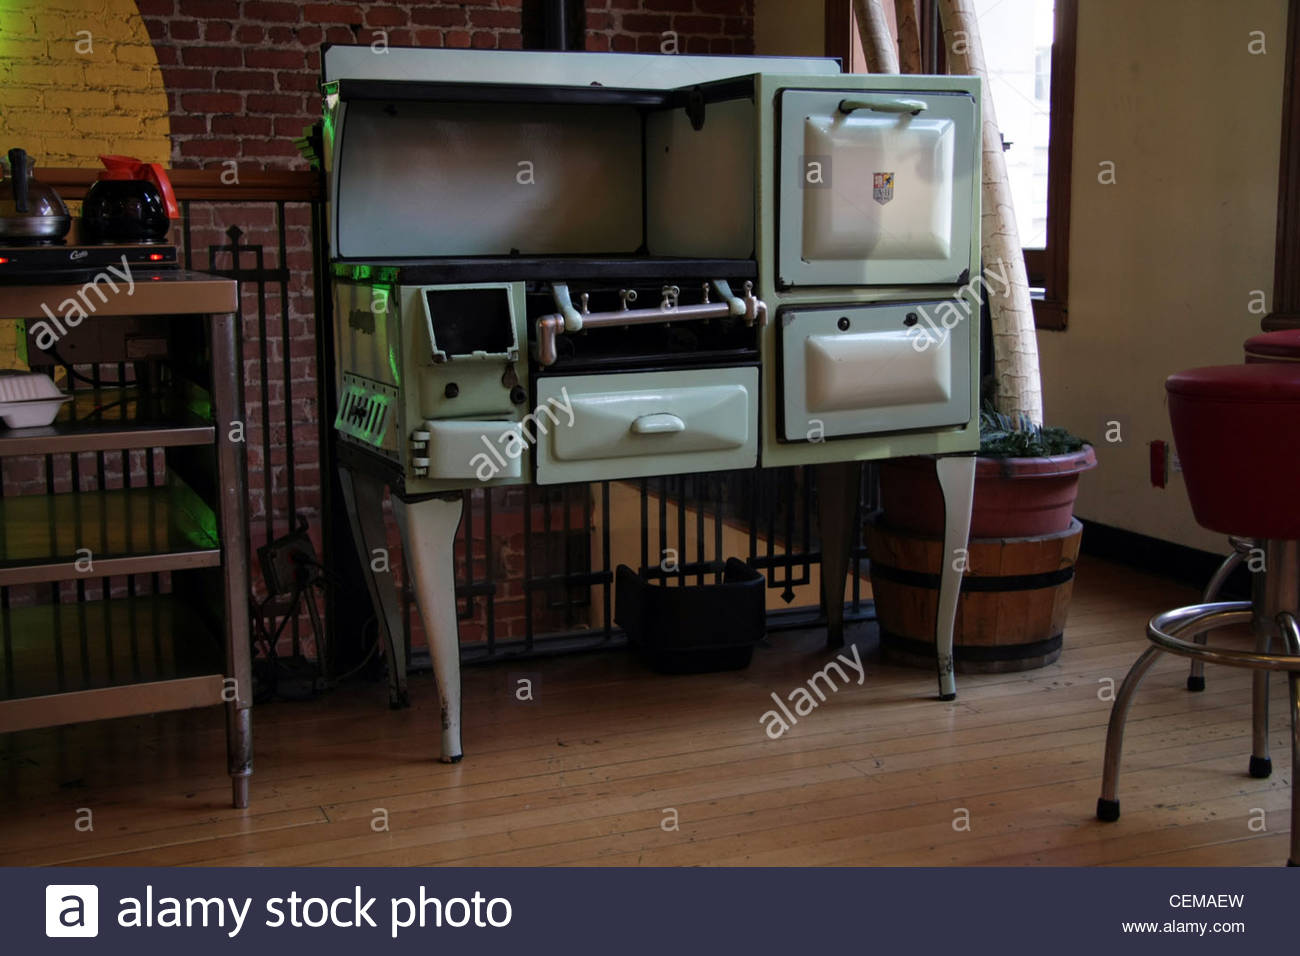 1950's or possibly 1960's American stove cooker range - Stock Image